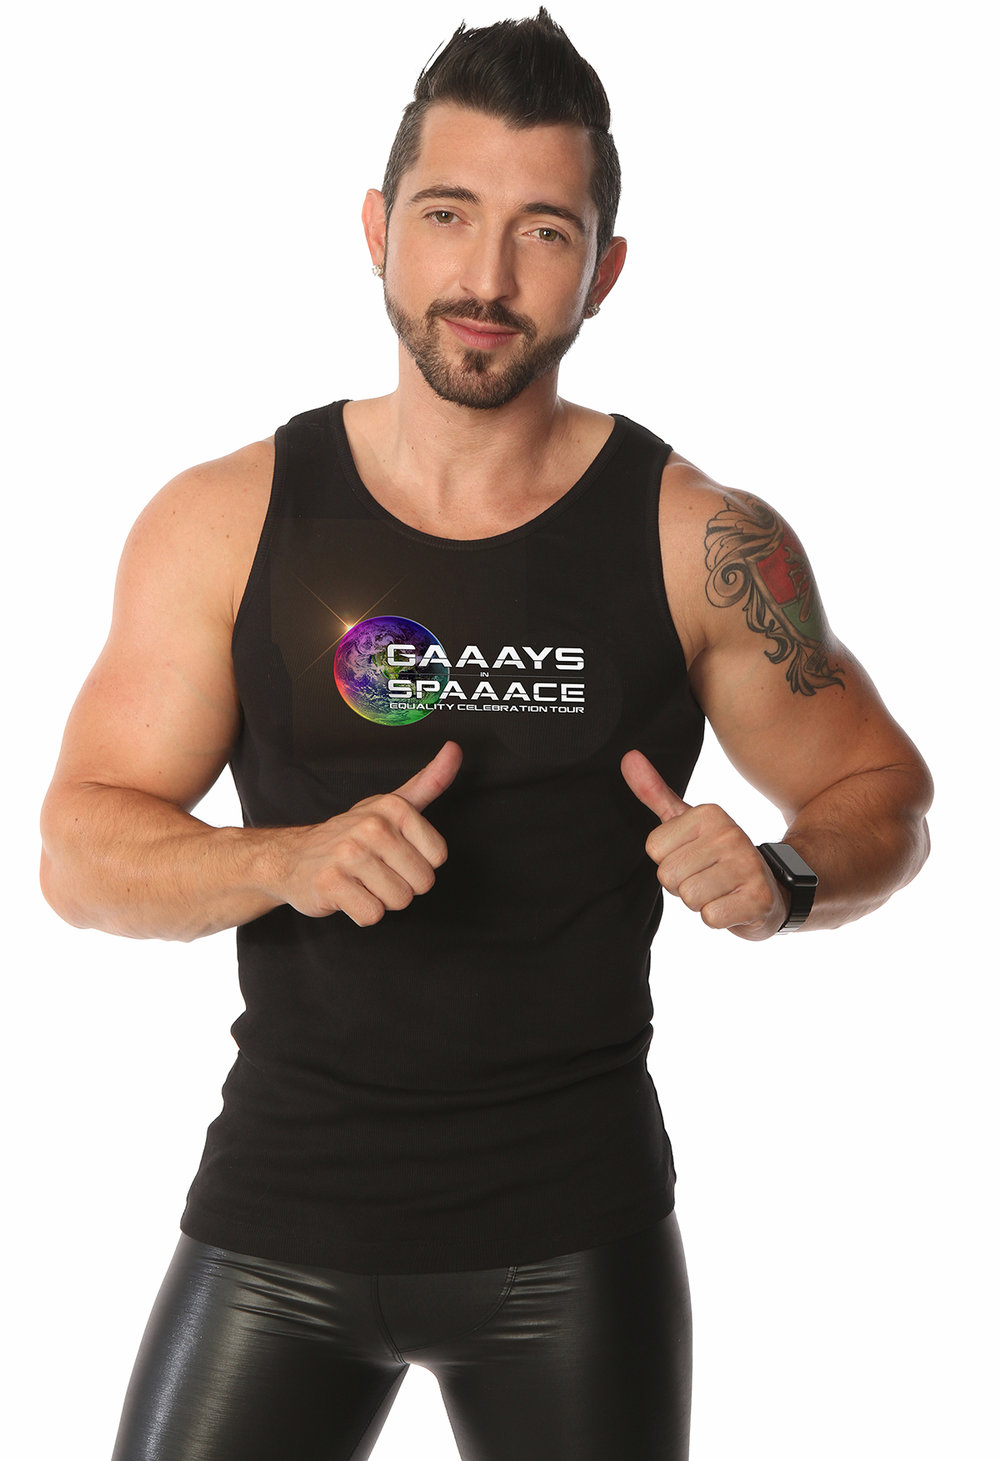 9-4-17-GAY-PLANET-TANK-TOP-JIMMY-POINTS-TO-SHIRT-WEB-SIZE.jpg